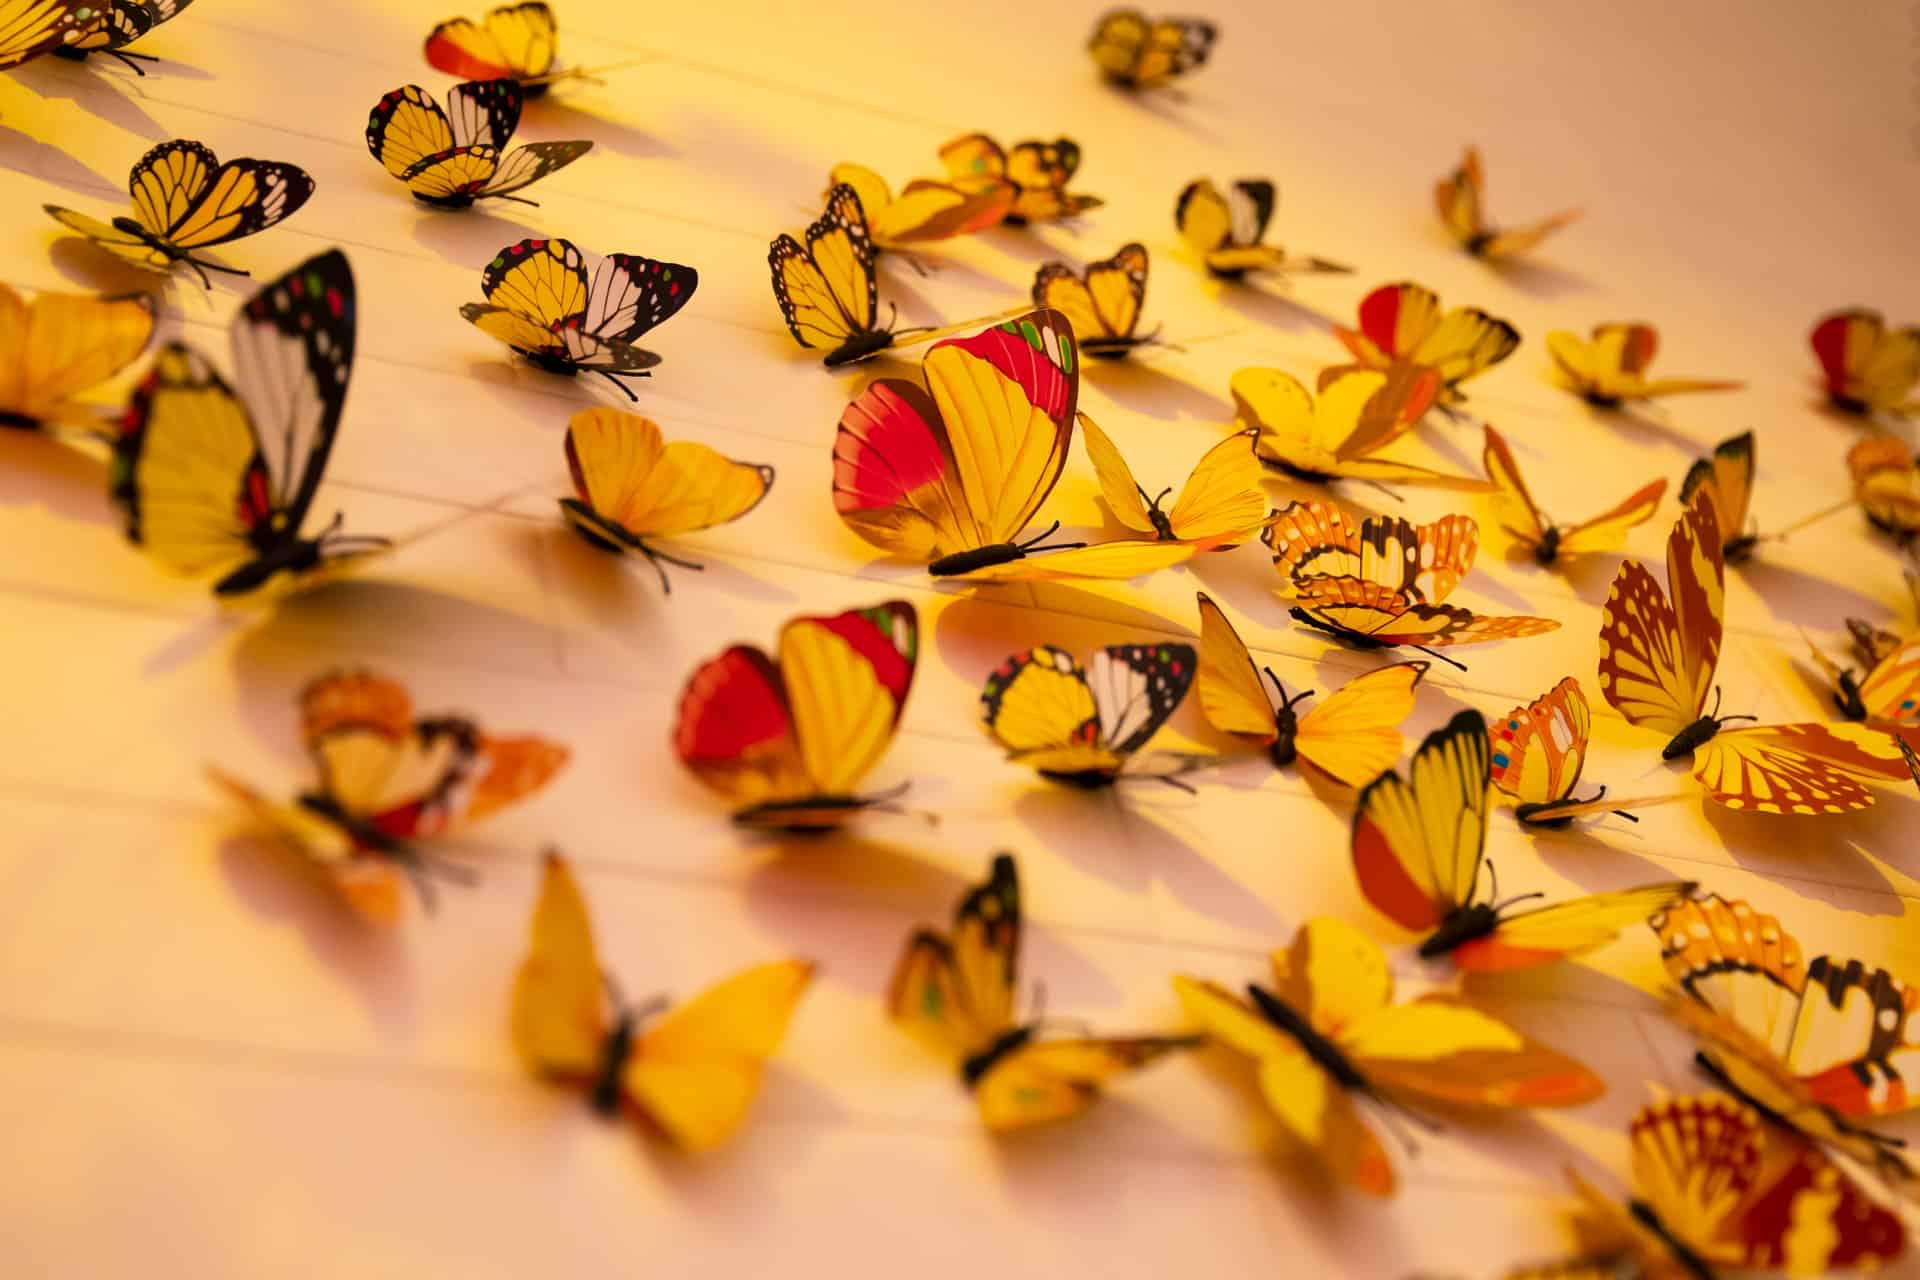 What do butterflies symbolize